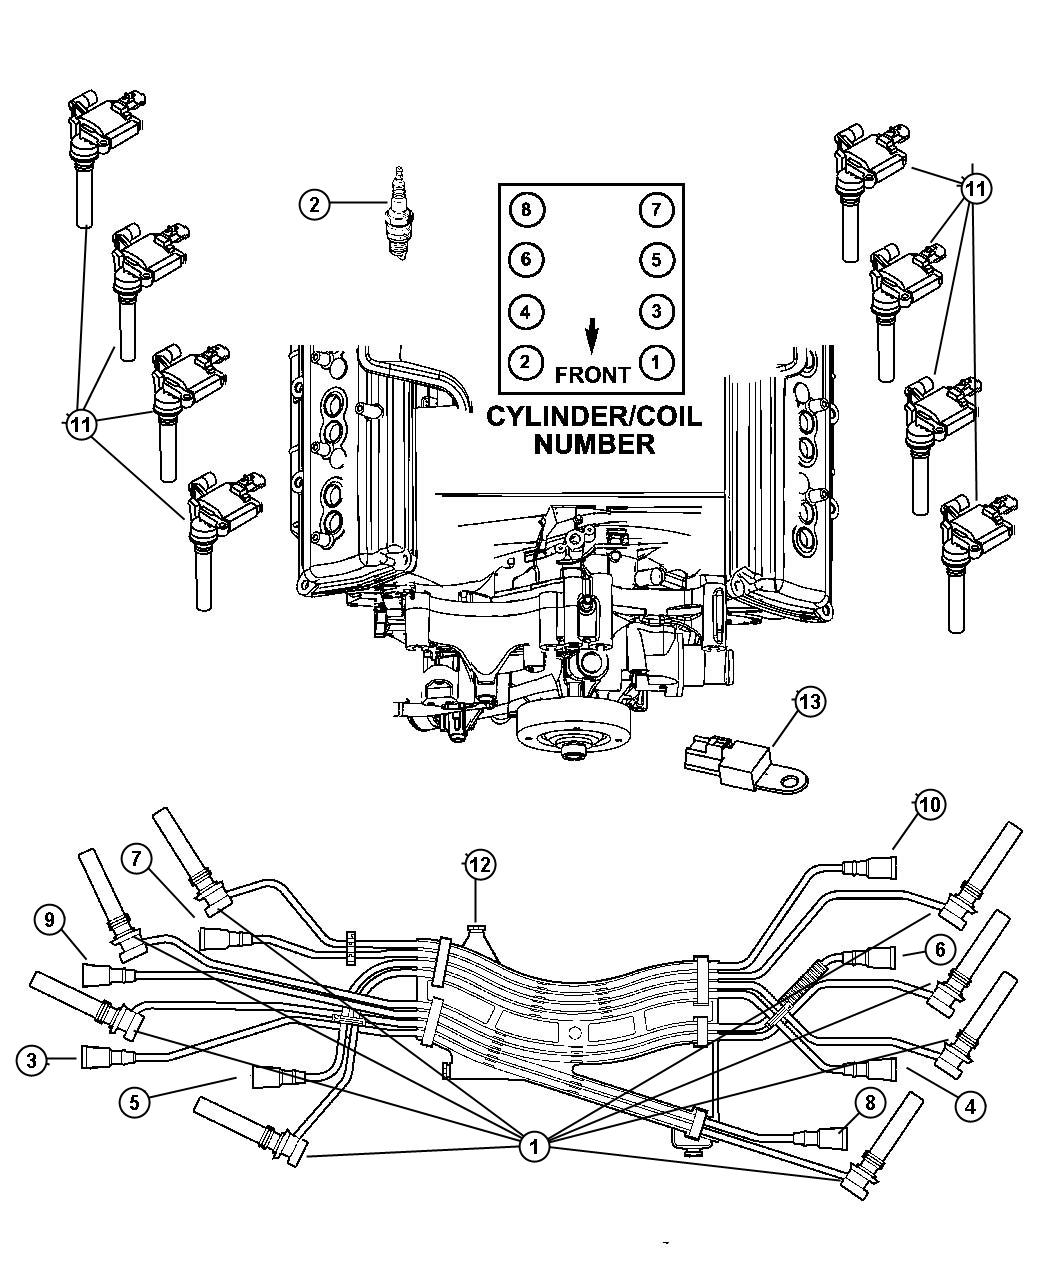 Jeep 545rfe Wiring Diagram Page 3 And Schematics 2003 Ram 1500 Dodge 426 Hemi Ignition Get Free Image About Transmission